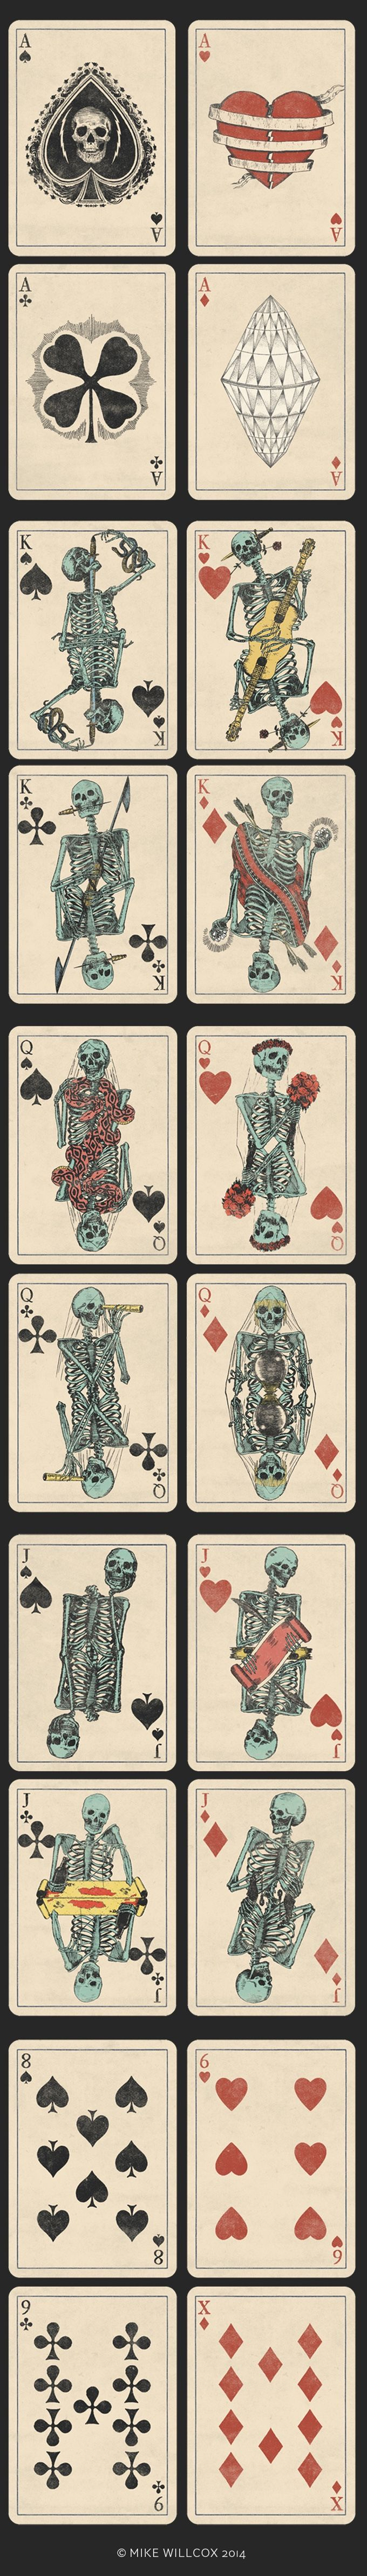 An epic and timeless hand illustrated deck of skeleton gypsies, sailors, thieves, and lovers.